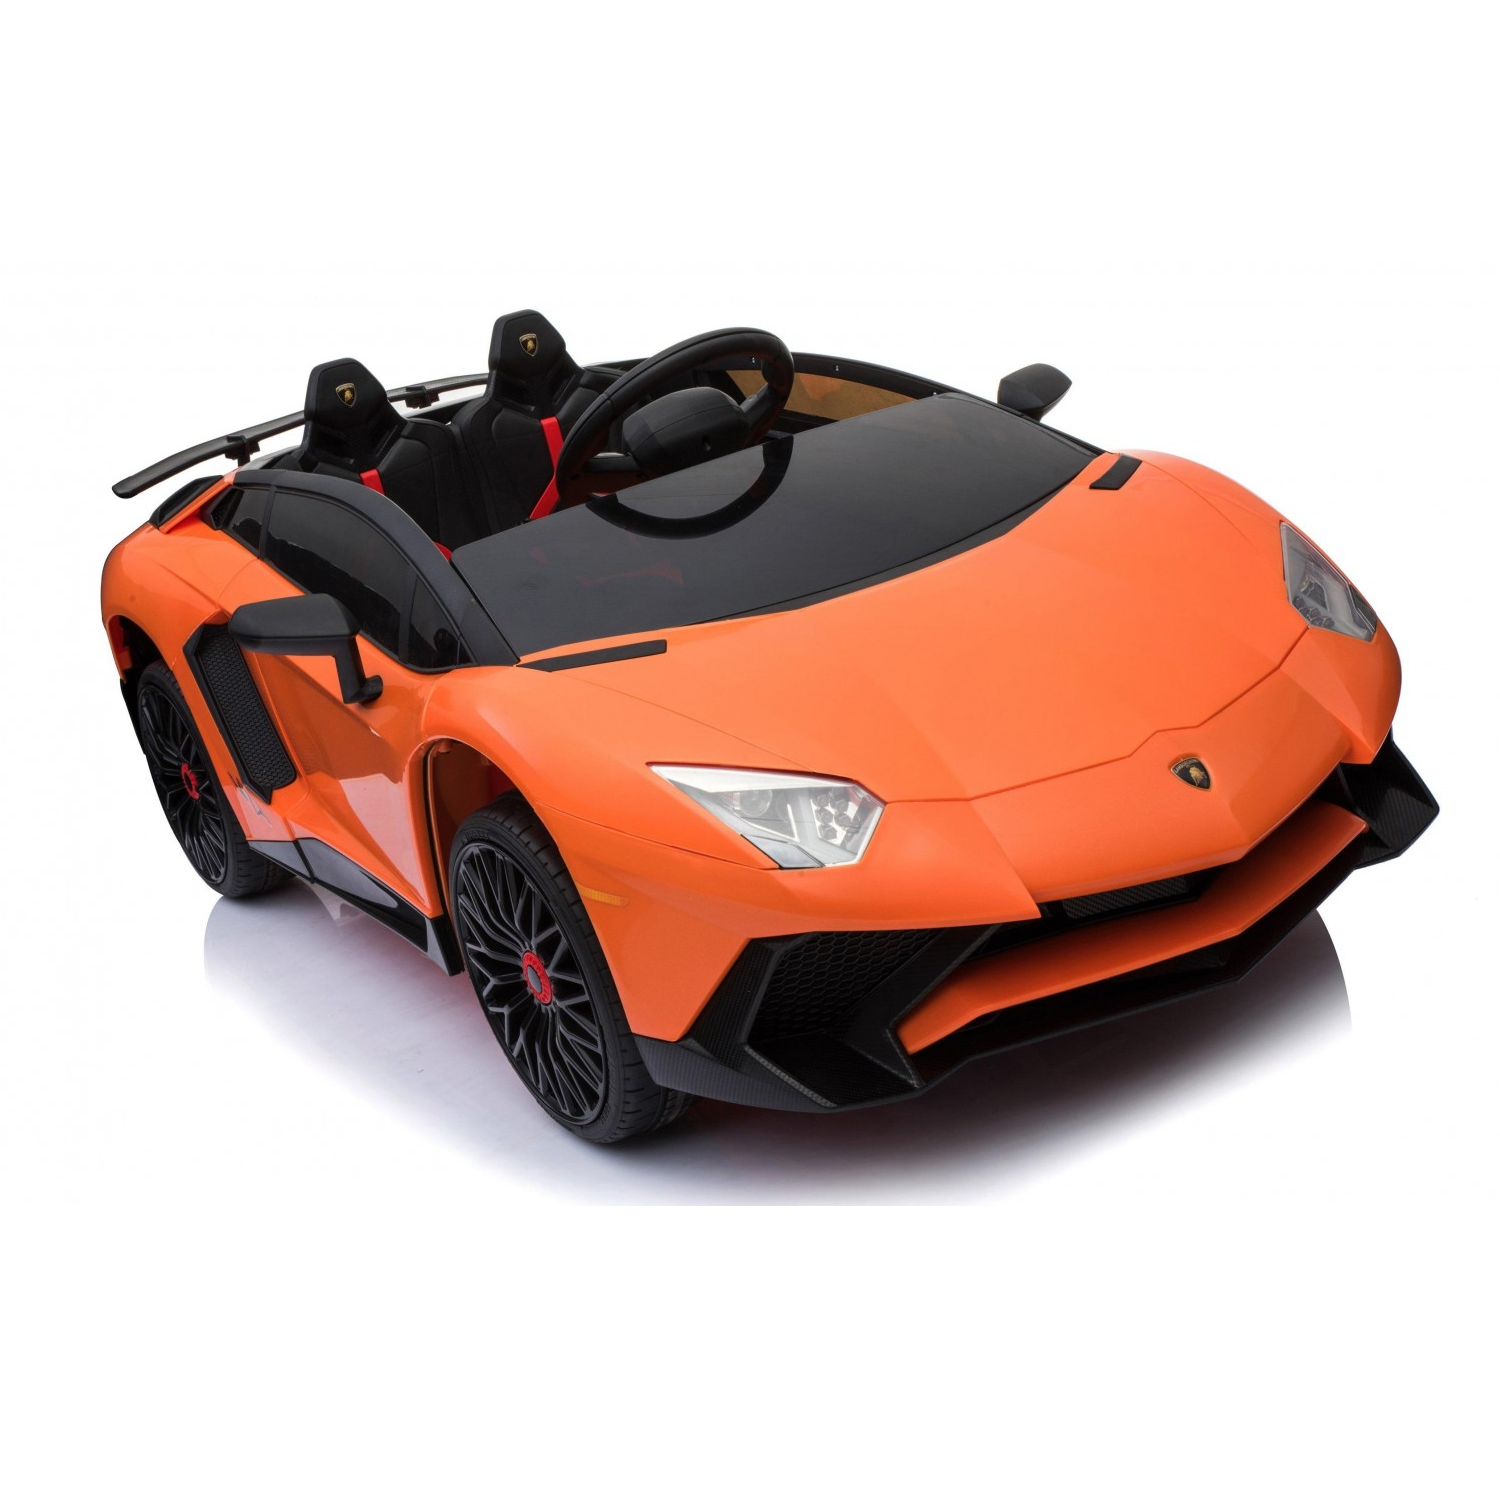 Lamborghini Aventador SV 12V Ride on Kids Electric Car With Remote Control - Orange